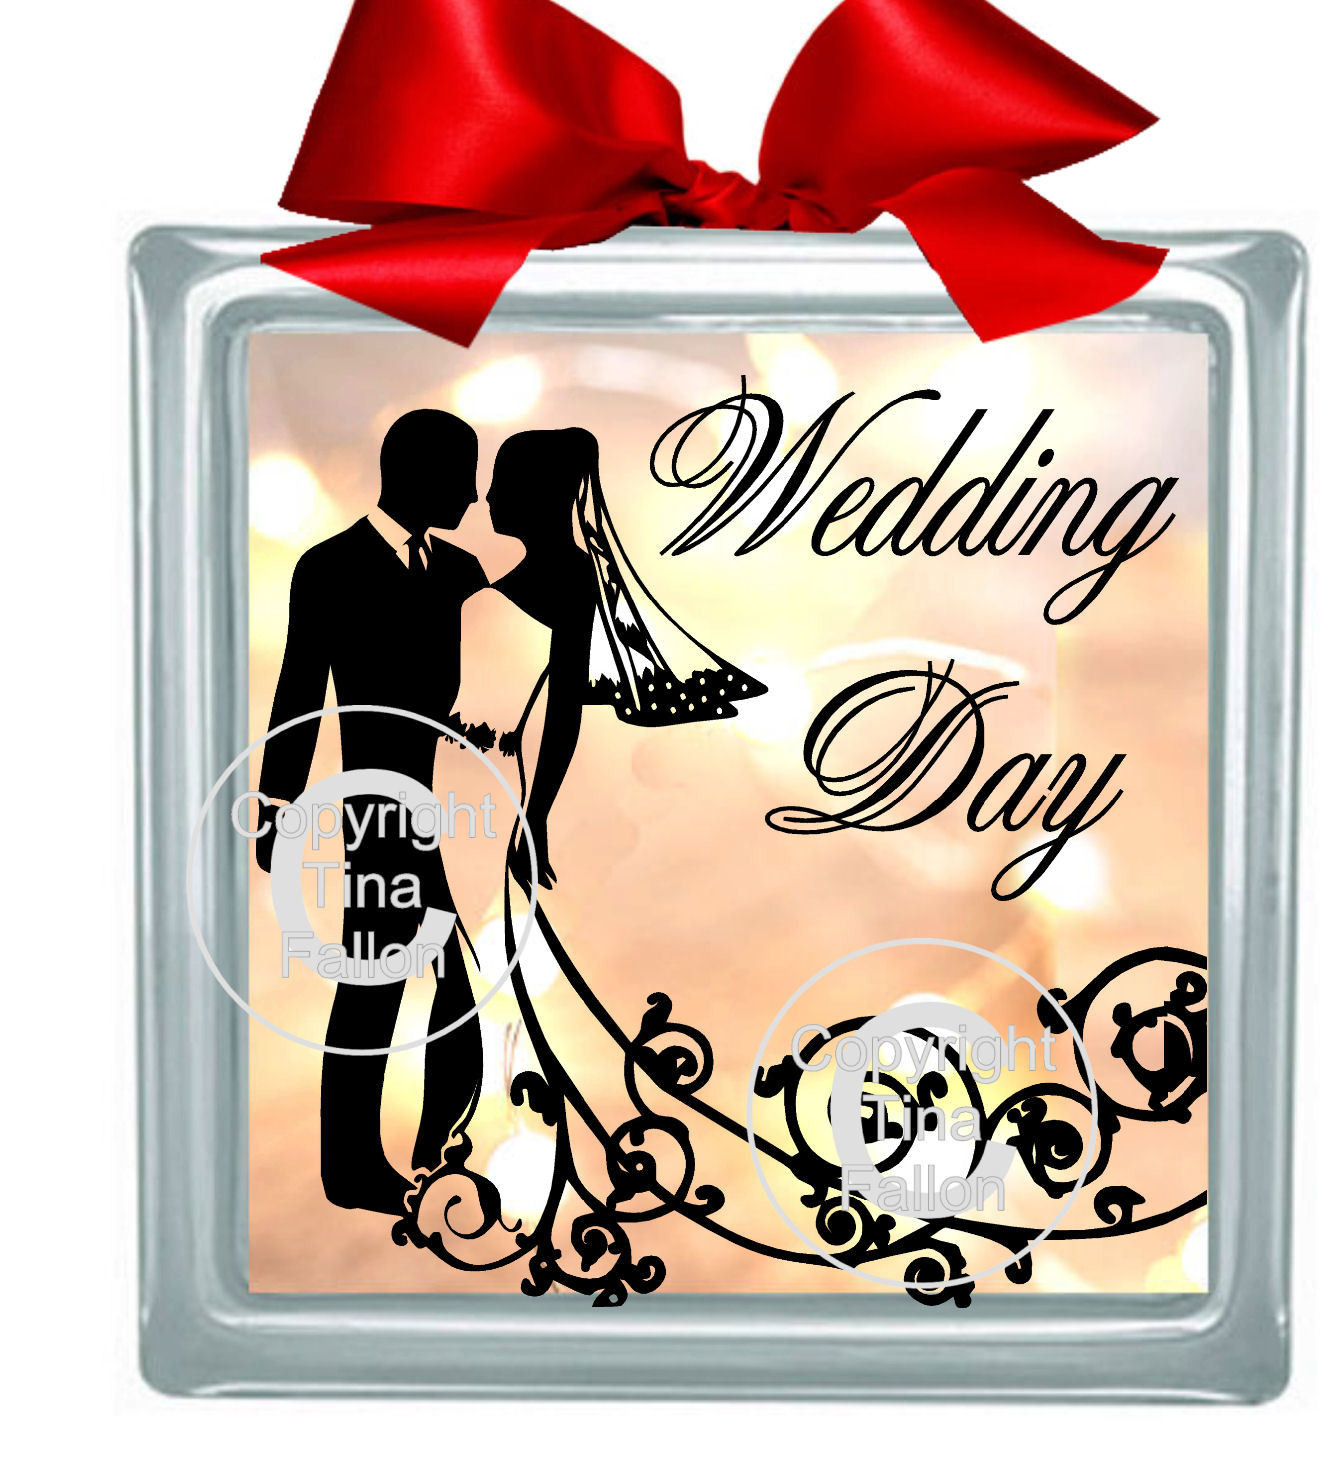 WEDDING COUPLE 3 Glass Block Tile Design 6x6 inches please read info before purchase